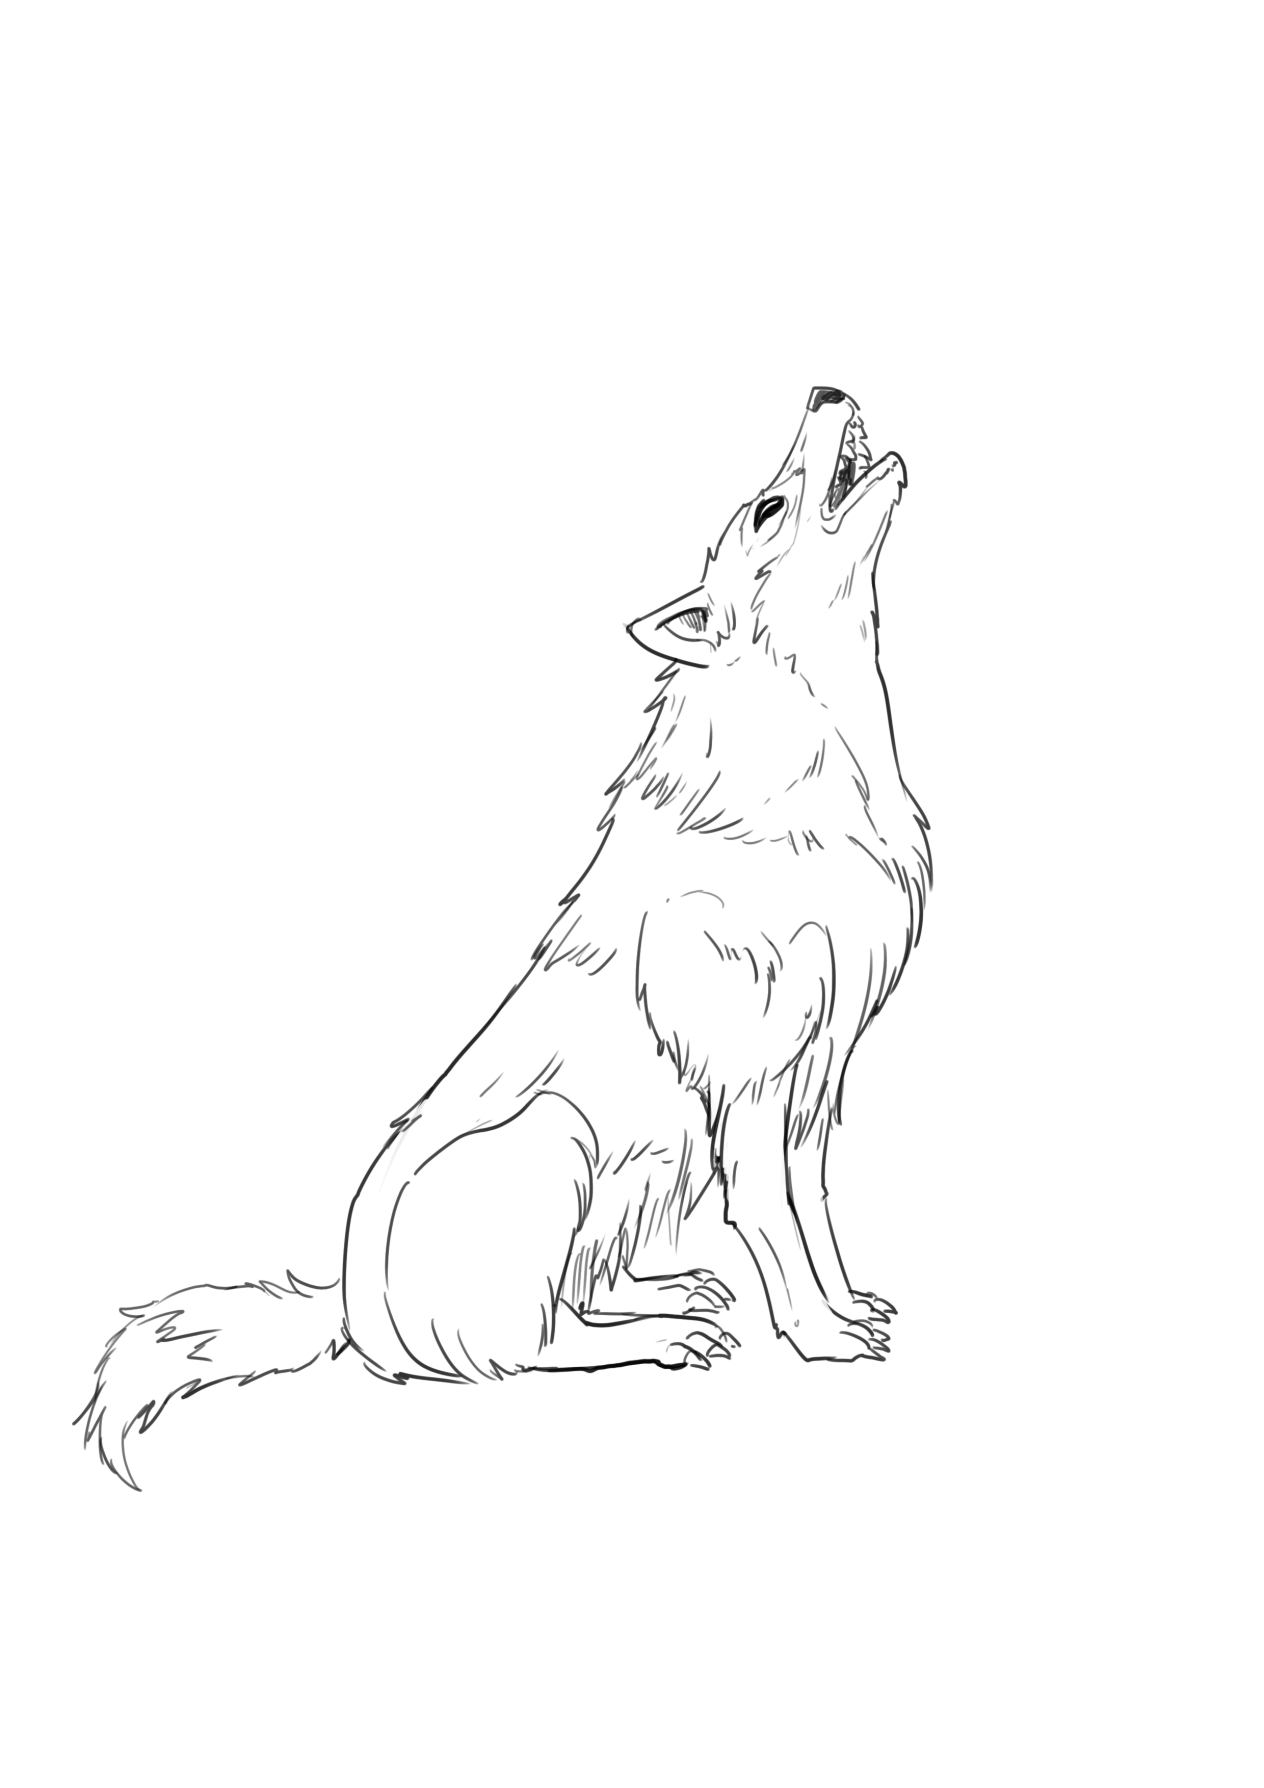 6 Ways to draw a Wolf - Realistic, Cartoon, and Fantasy ...